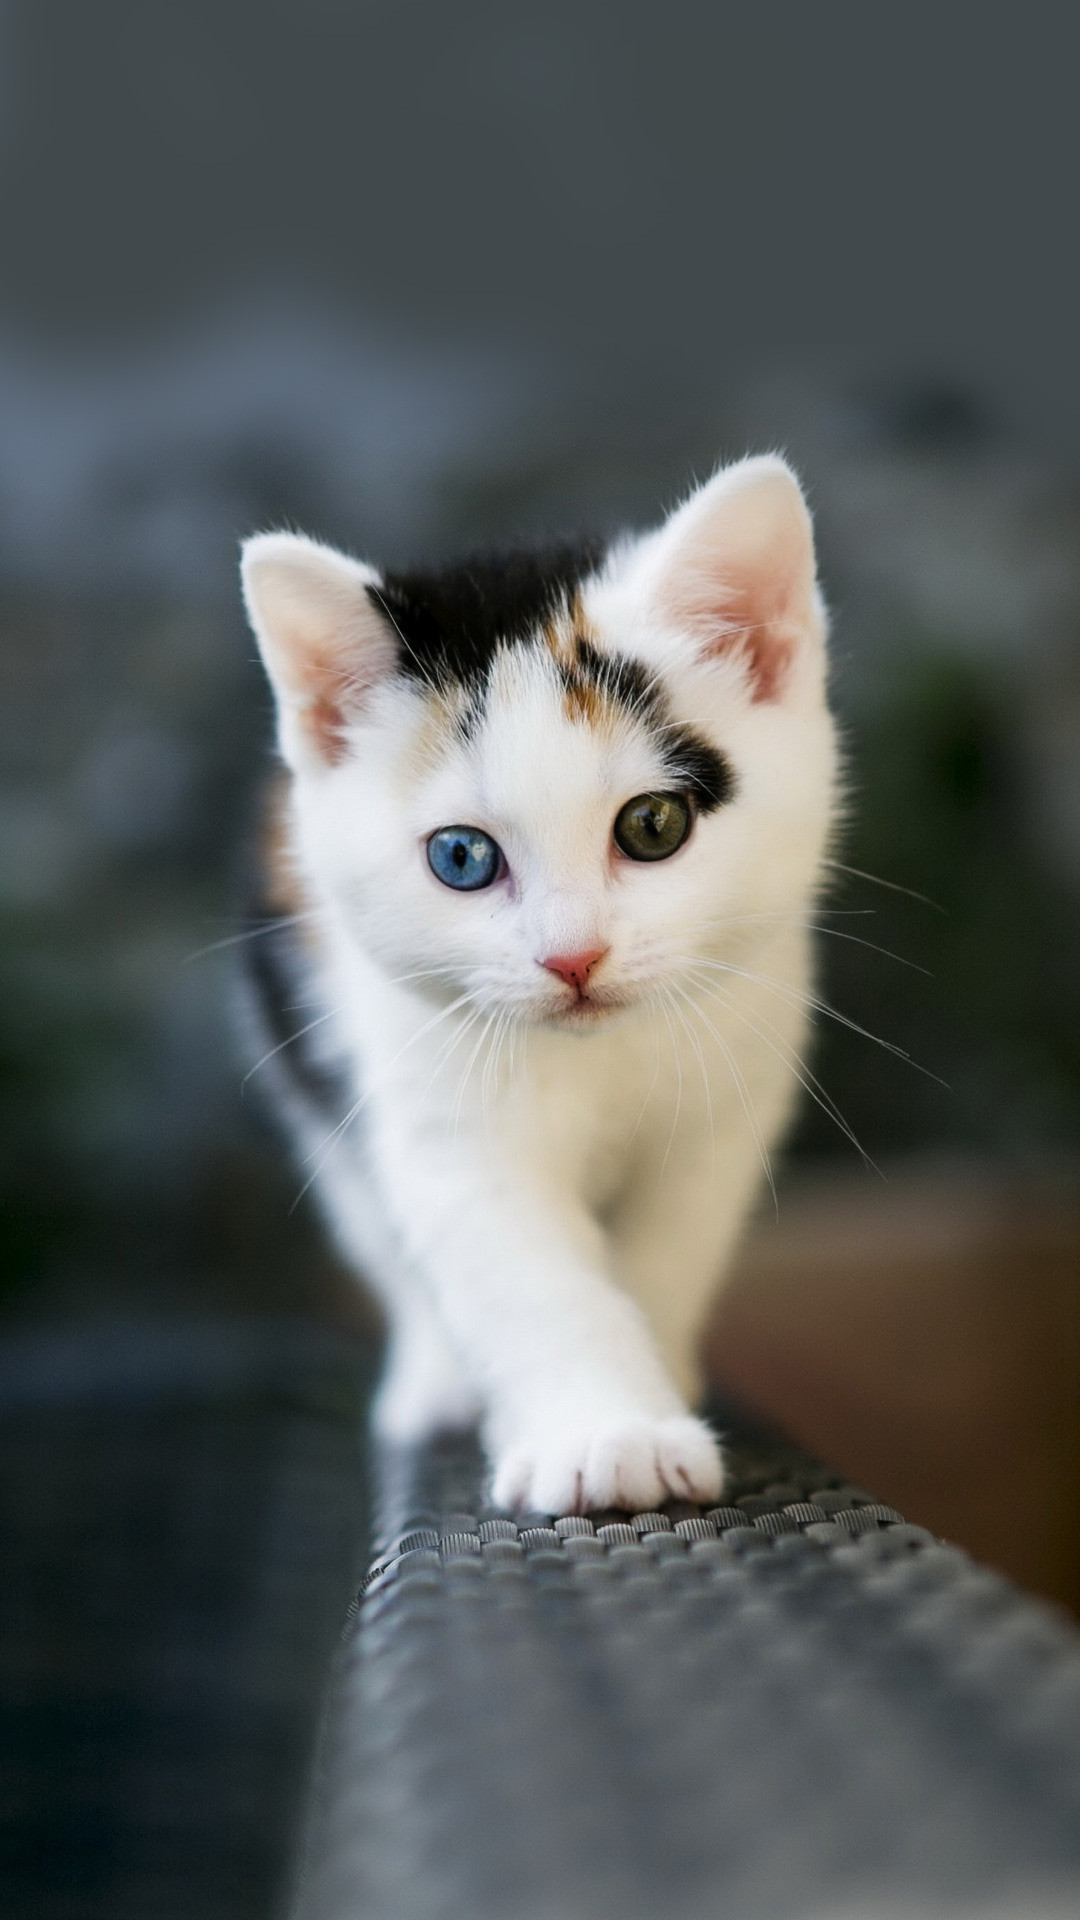 Res: 1080x1920, android phone wallpaper cute 1080×1920 cute kitten download hd images  amazing background images mac desktop wallpapers free pictures smart phone  1080×1920 ...